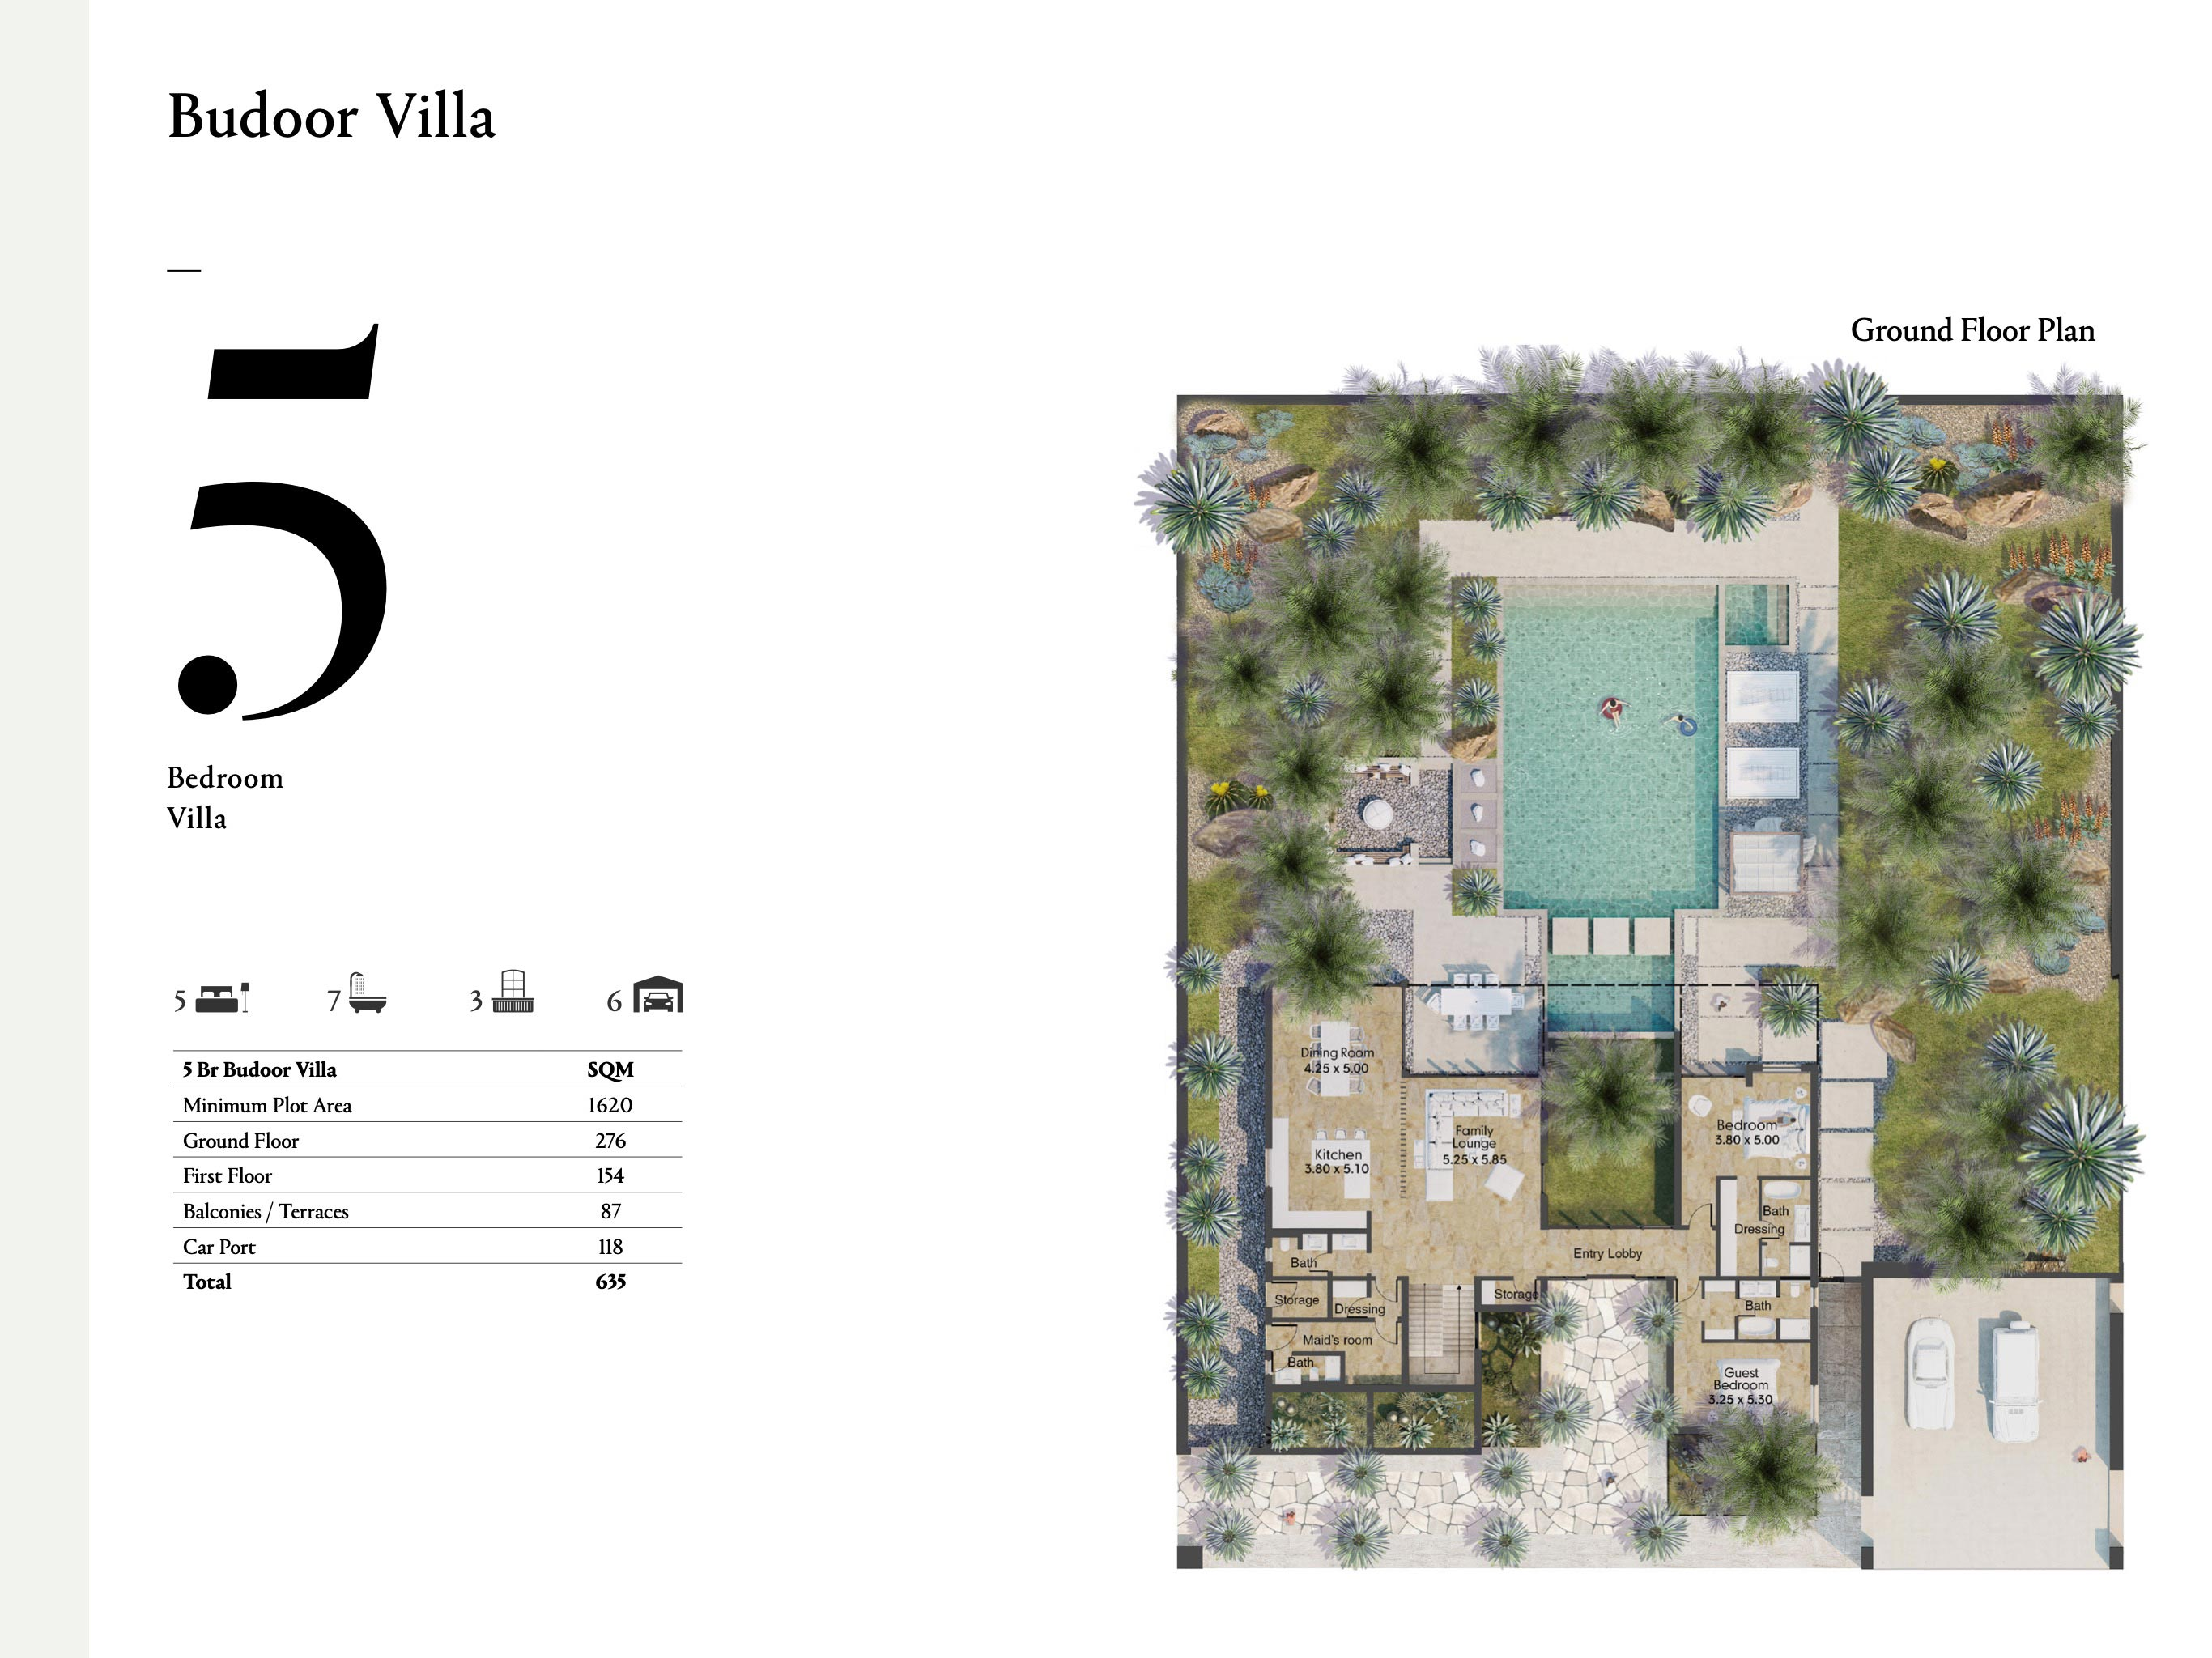 Budoor Villa - 5 Bedroom with a size area of 635 sqm